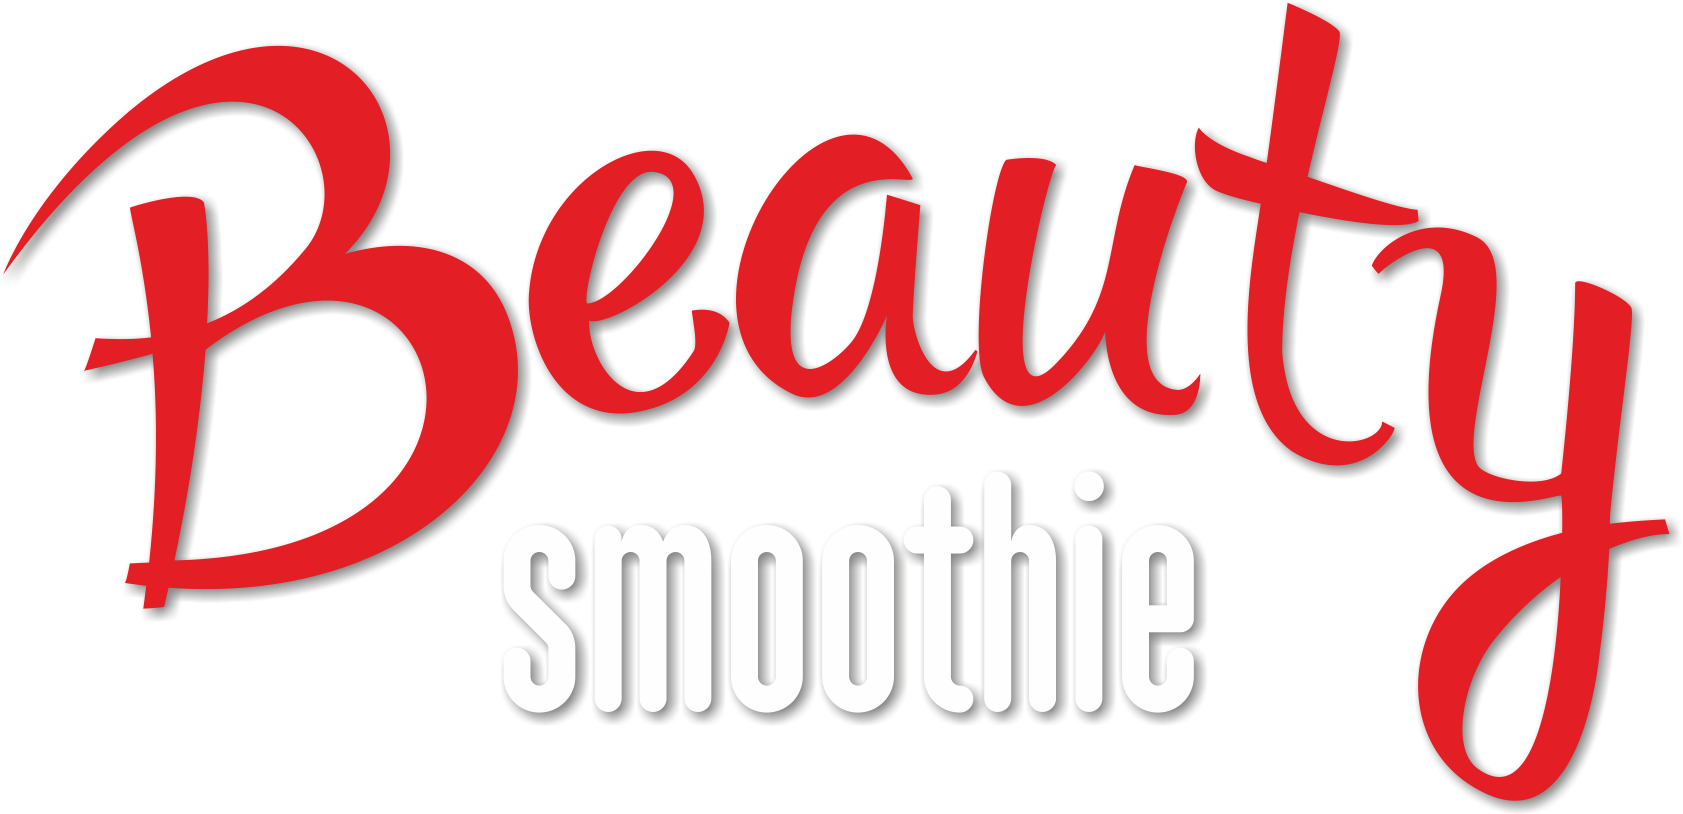 Beauty Smoothie